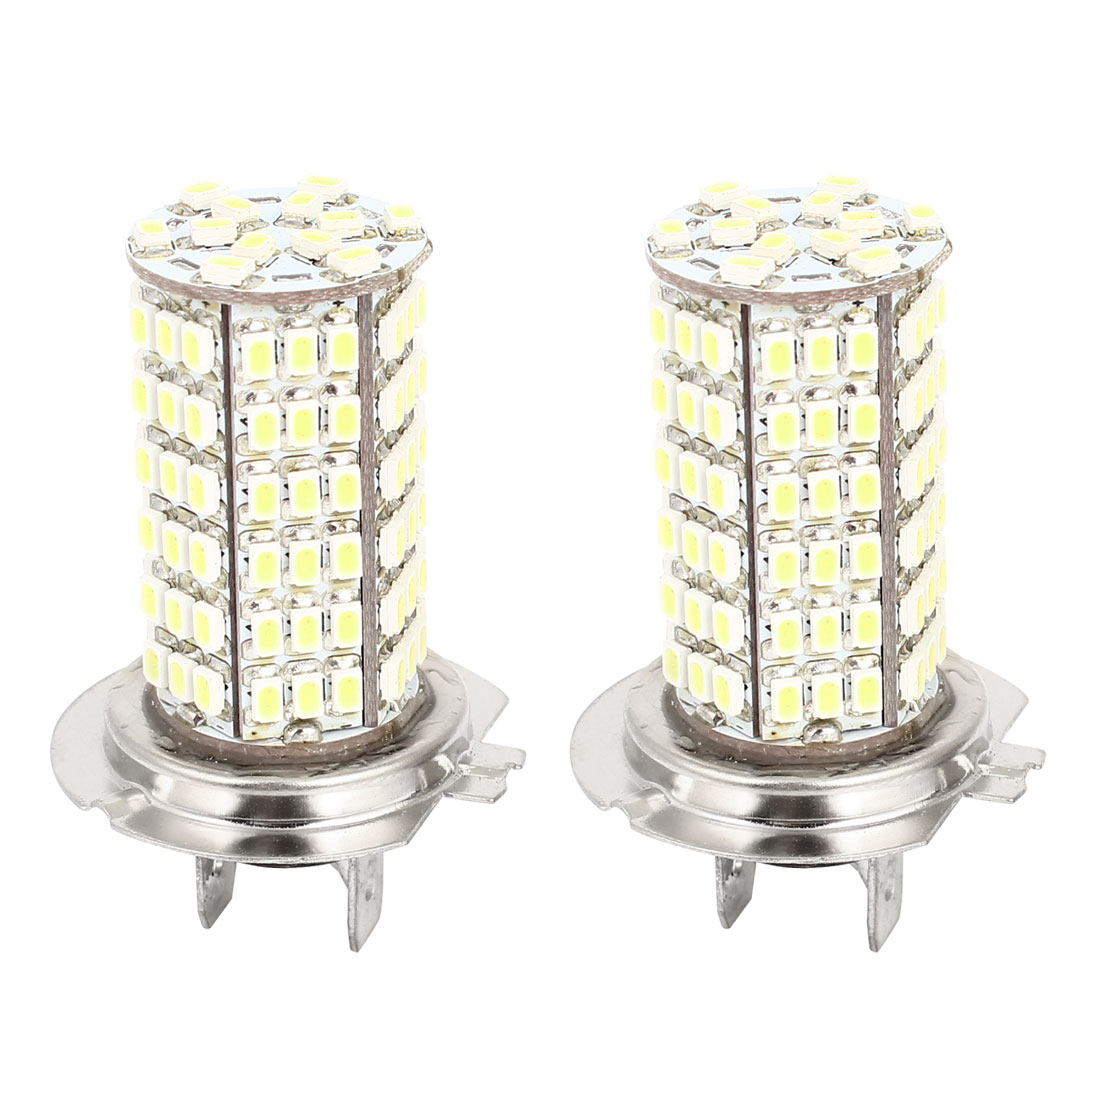 Car White LED 120 SMD 1210 Bulbs H7 Fog Daytime Light Lamp 2 Pcs